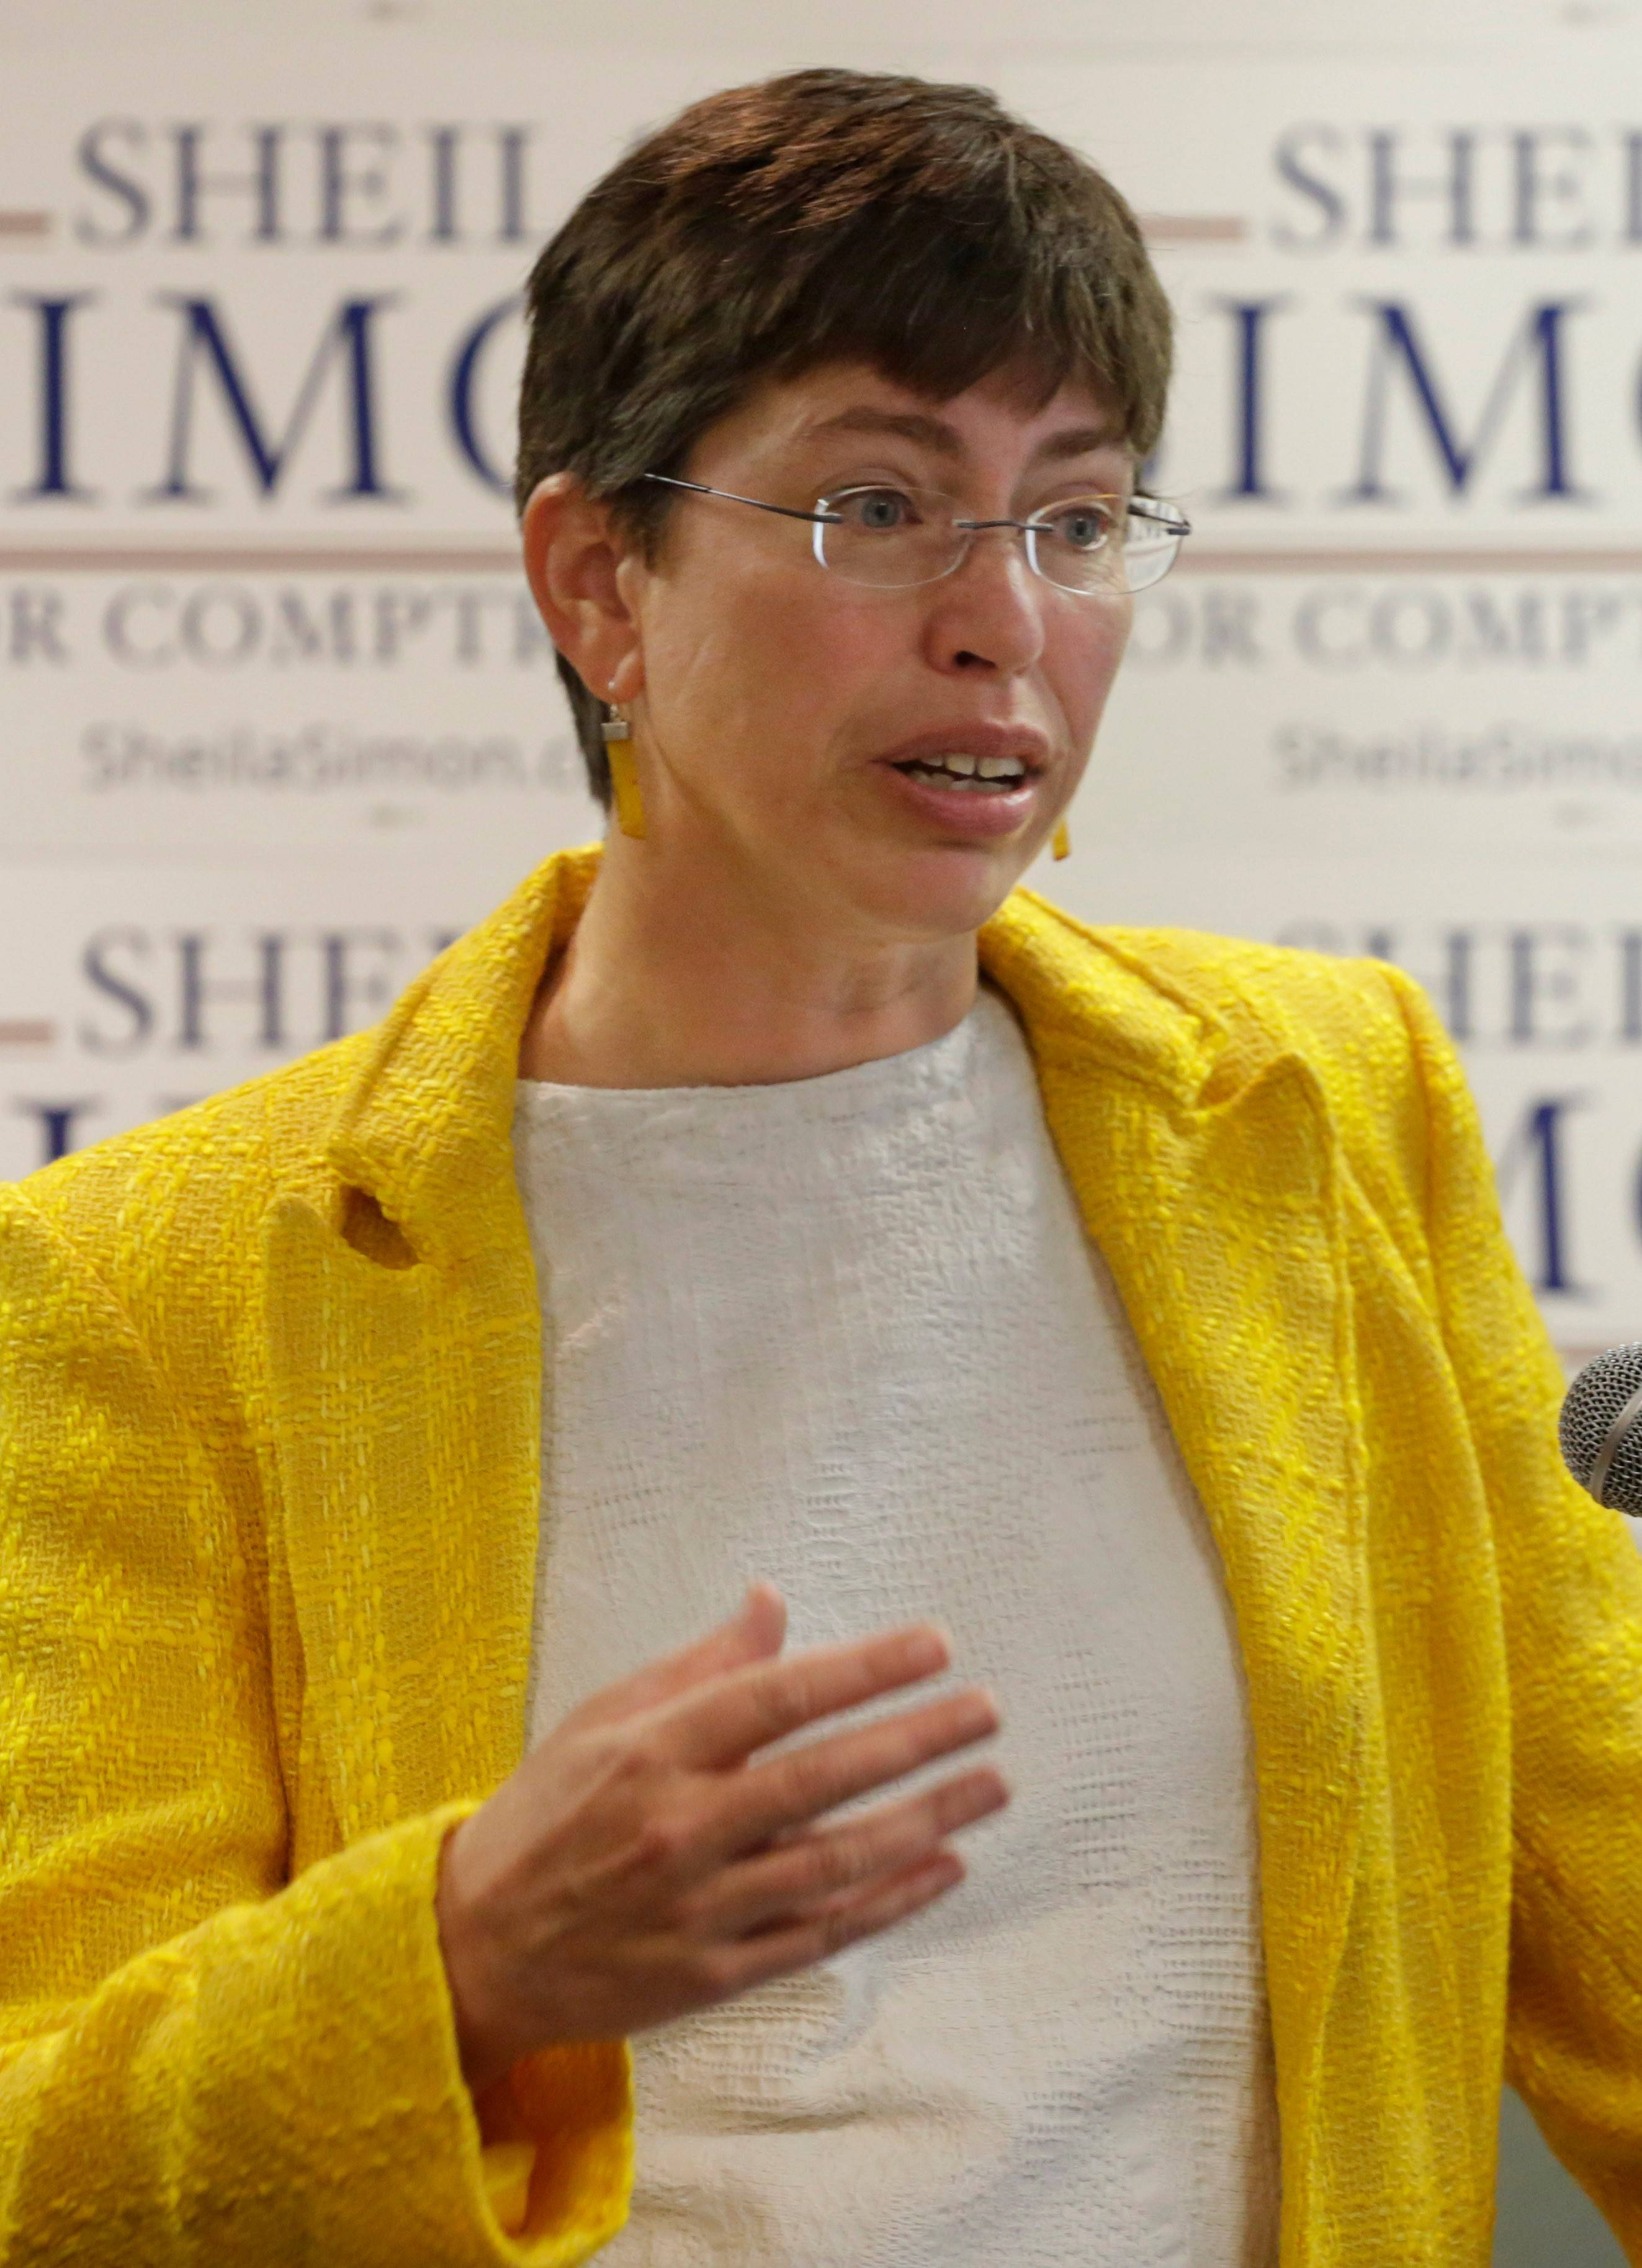 Democratic comptroller candidate Sheila Simon, currently Illinois' lieutenant governor, thinks the comptroller's office and the treasurer's office simply need to communicate better.